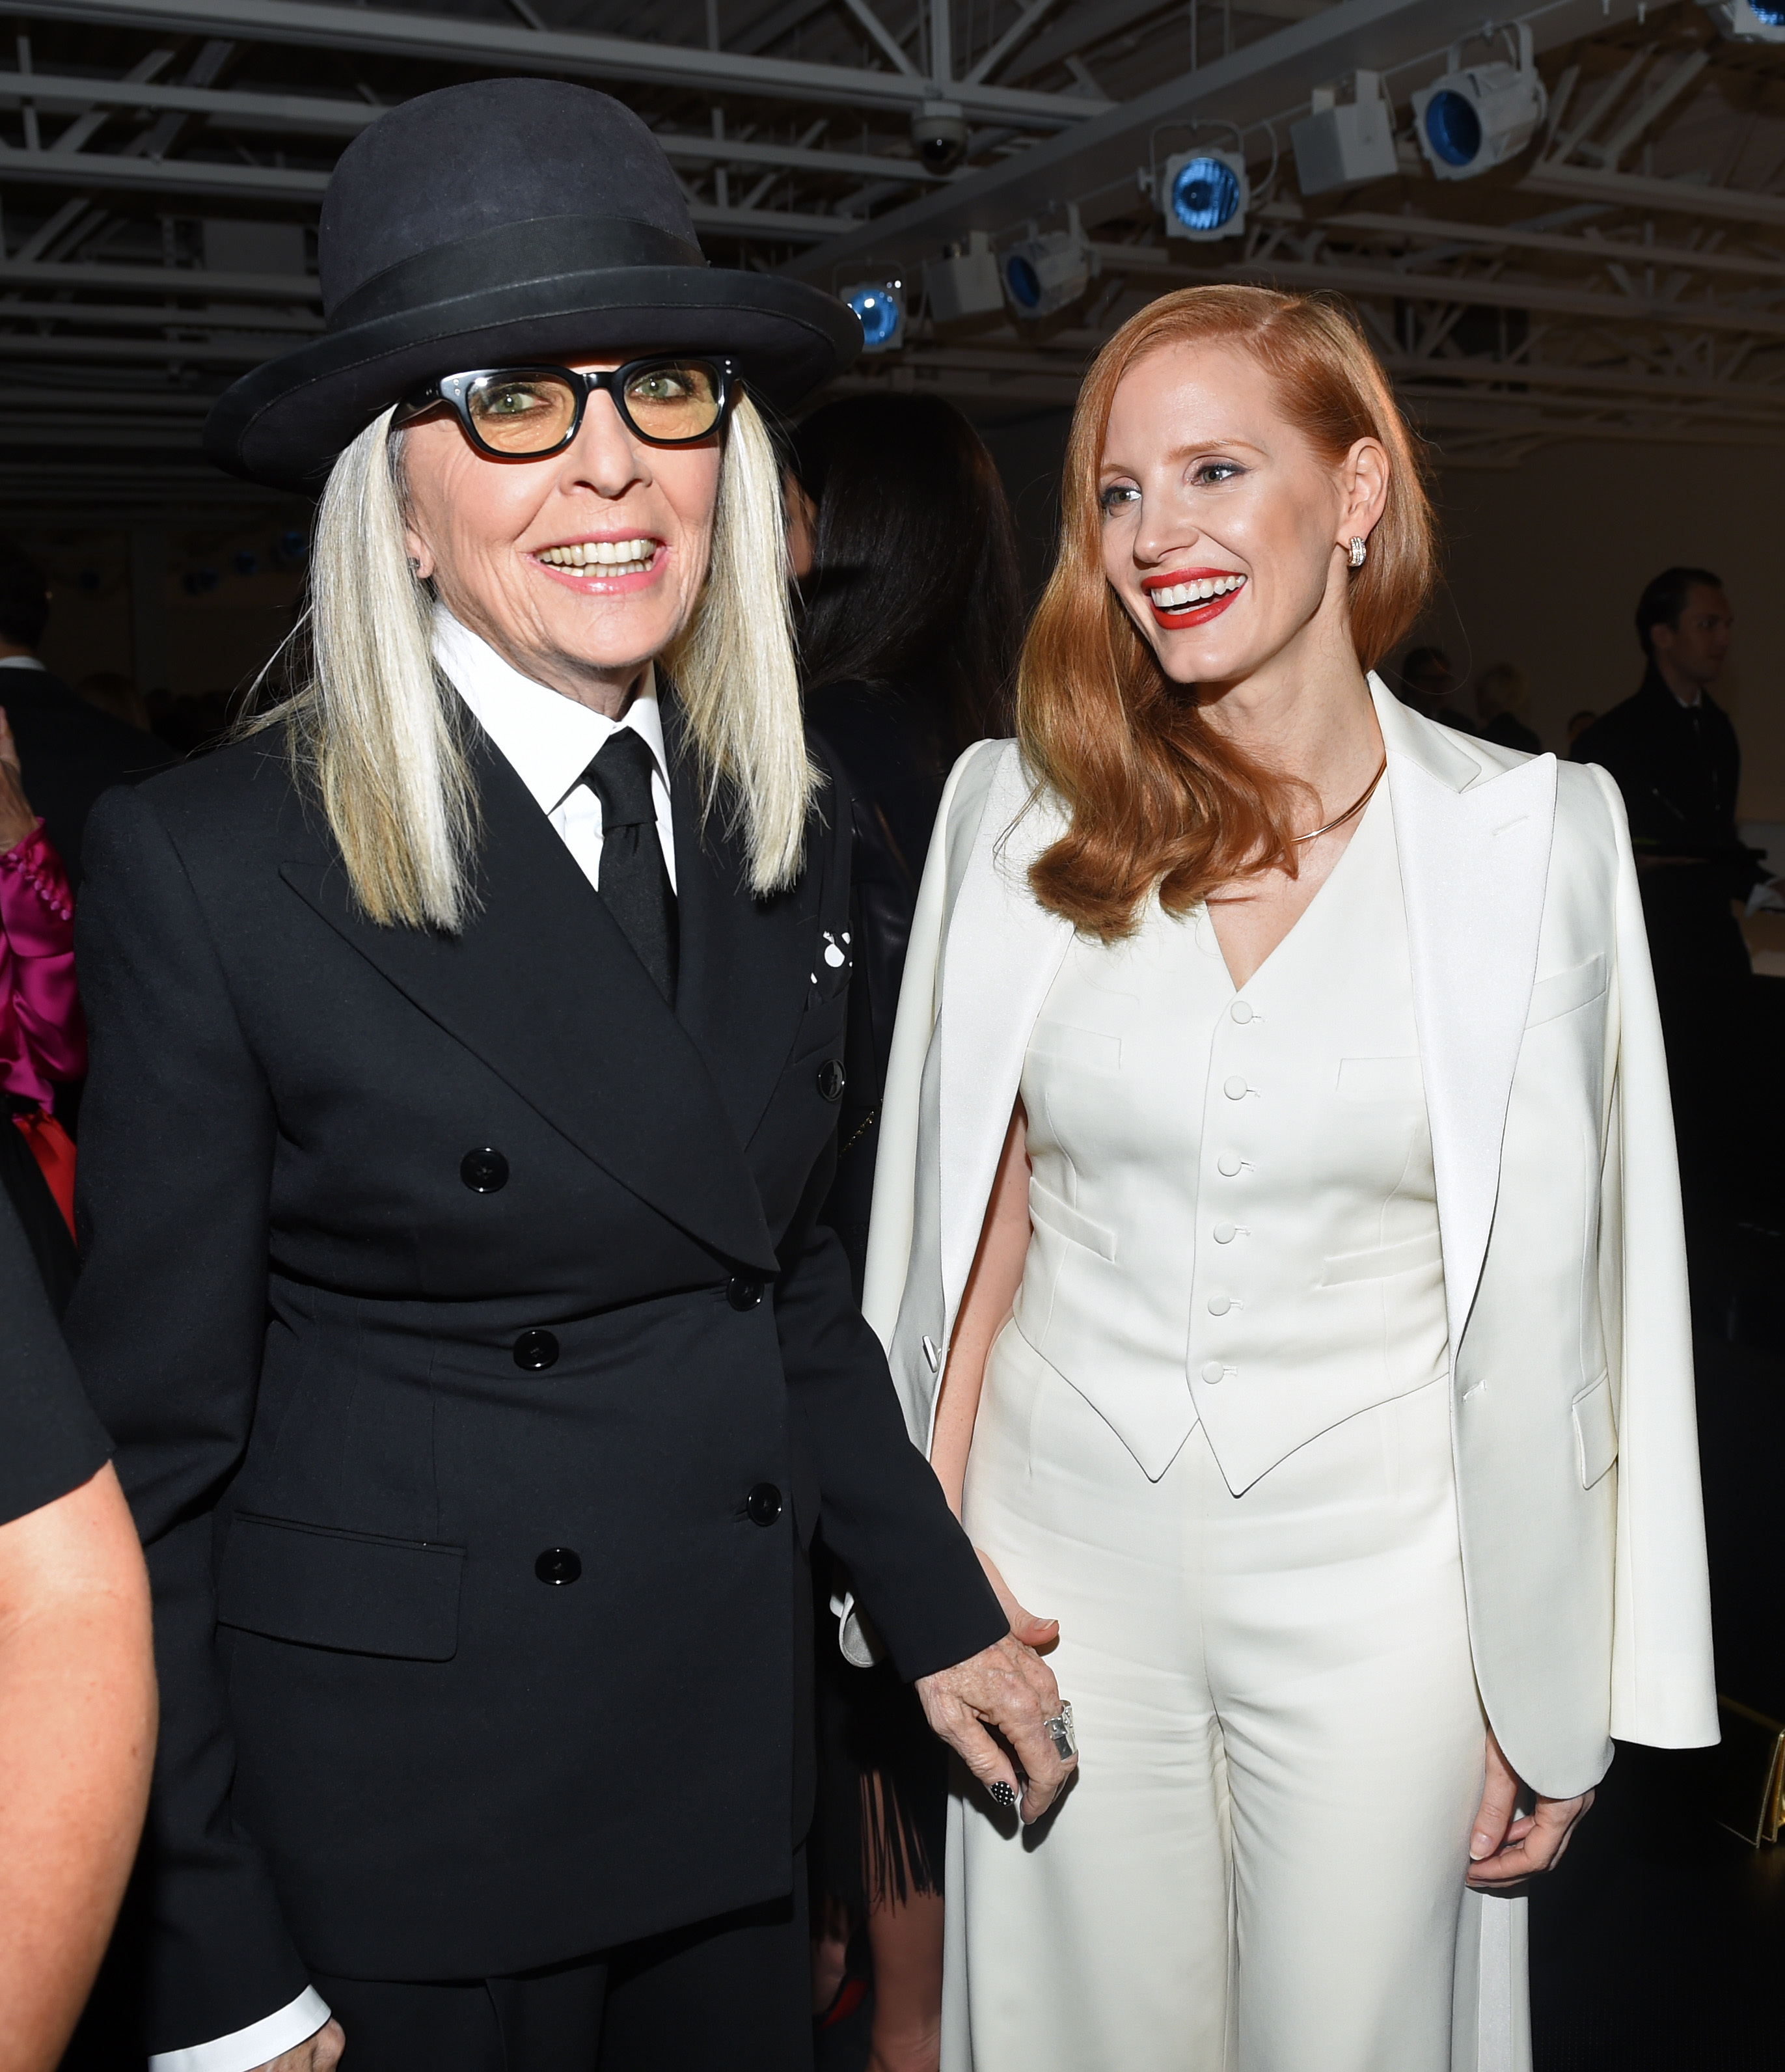 Diane Keaton and Jessica Chastain appear in the front row at the Ralph Lauren show for Spring/Summer 2018 at New York Fashion Week on Sept. 12, 2017.